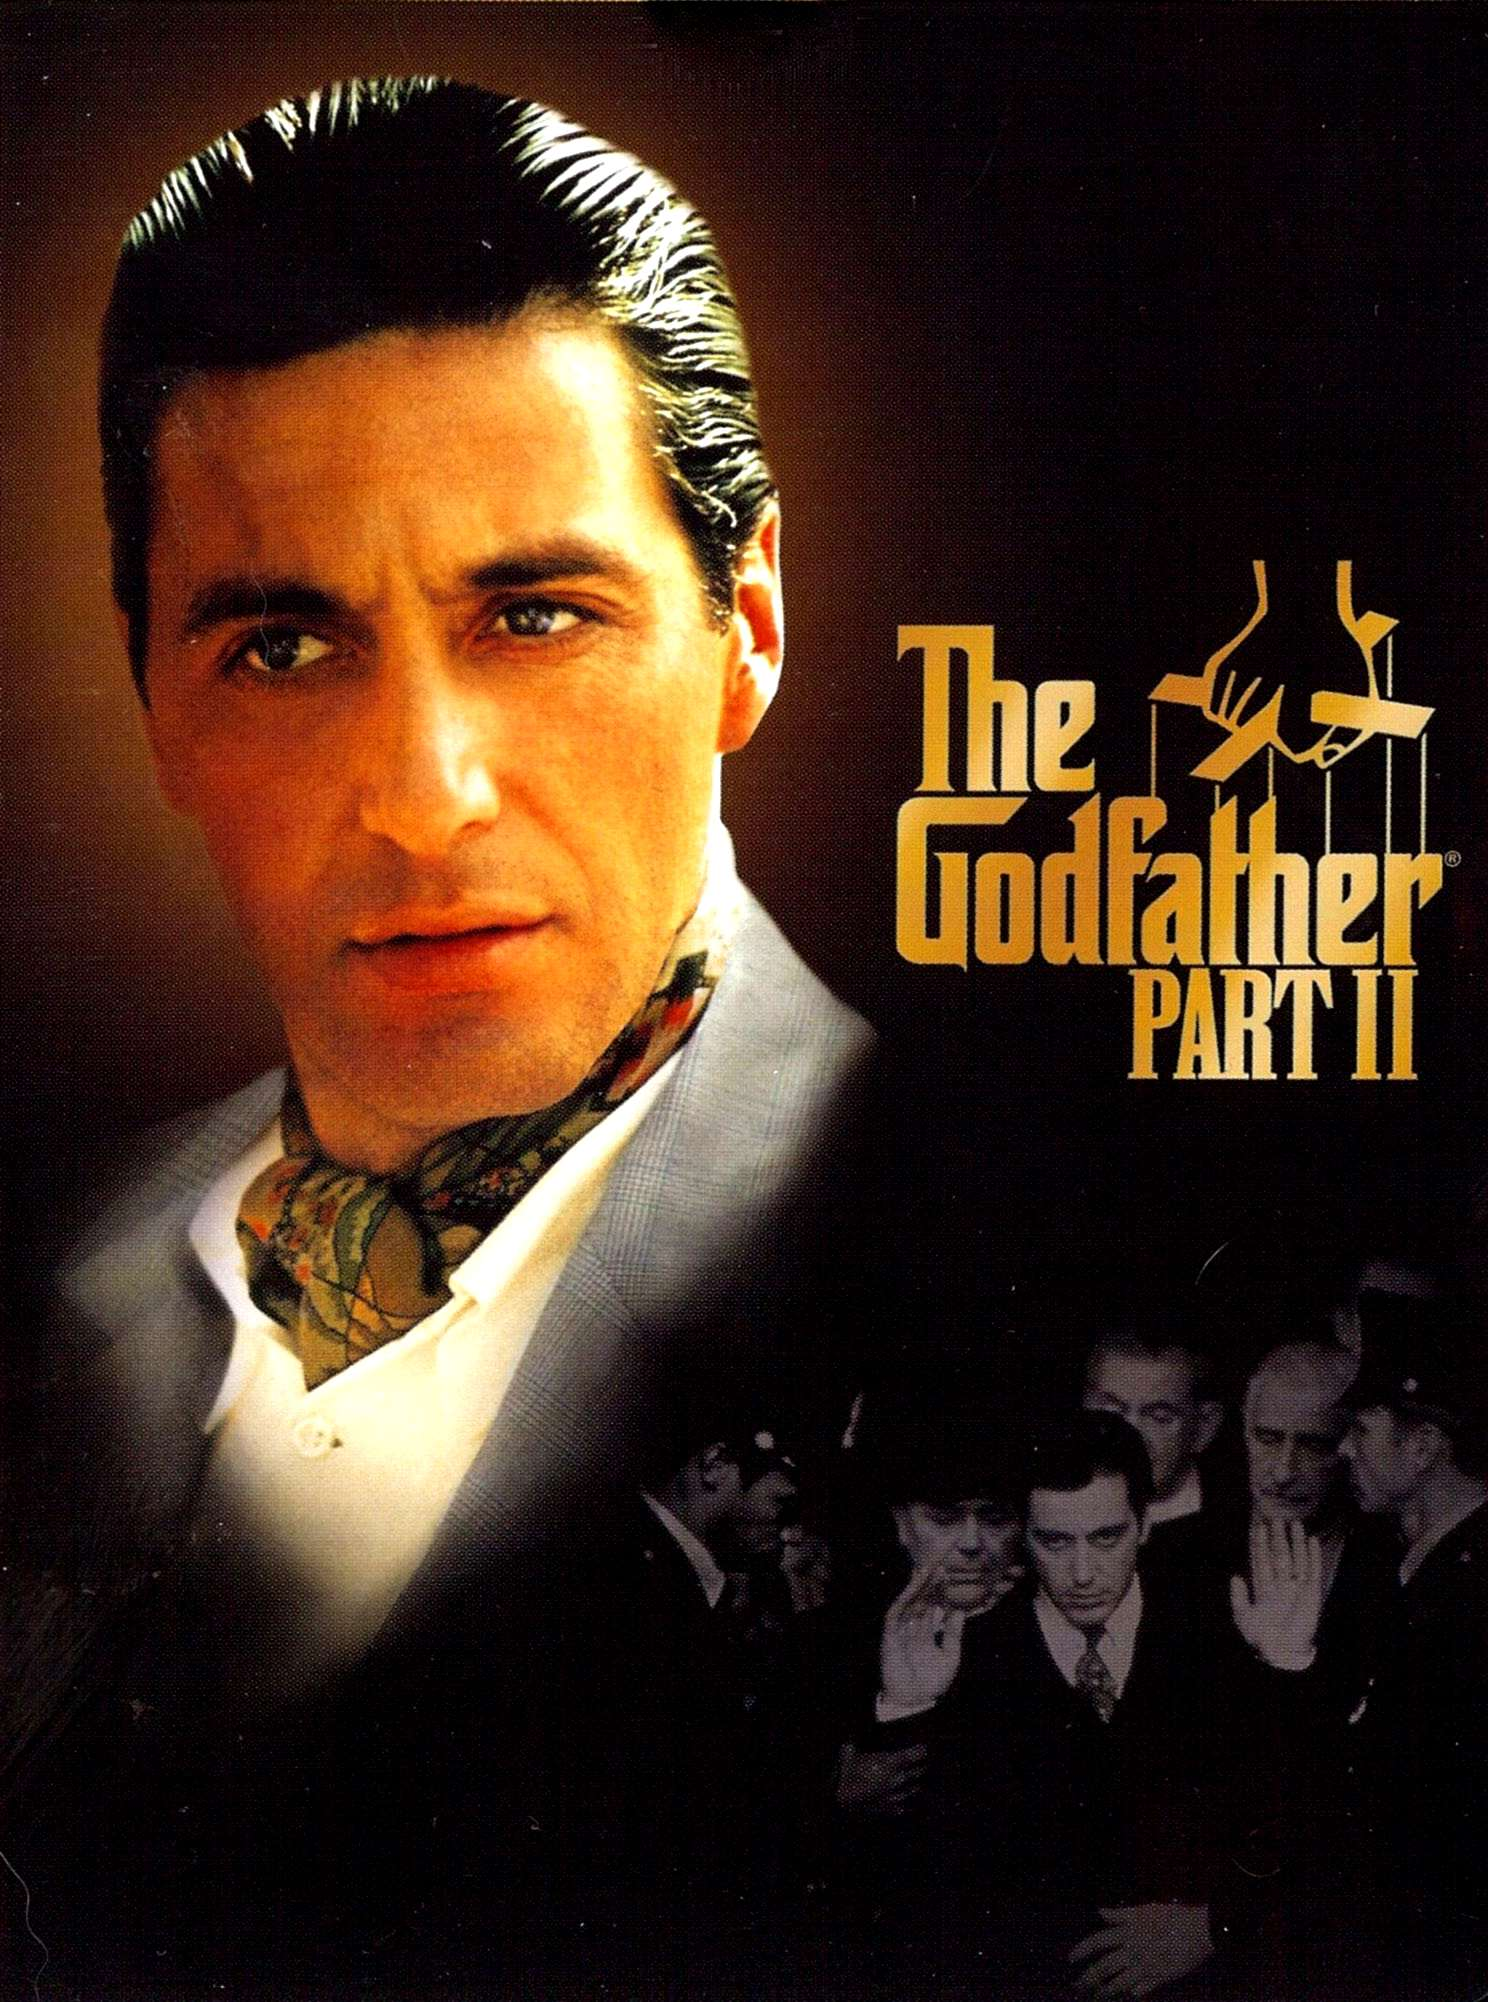 the godfather a synopsis The godfather part ii is a 1974 american crime film produced and directed by francis ford coppola from a screenplay co  the plot defies any rational synopsis .